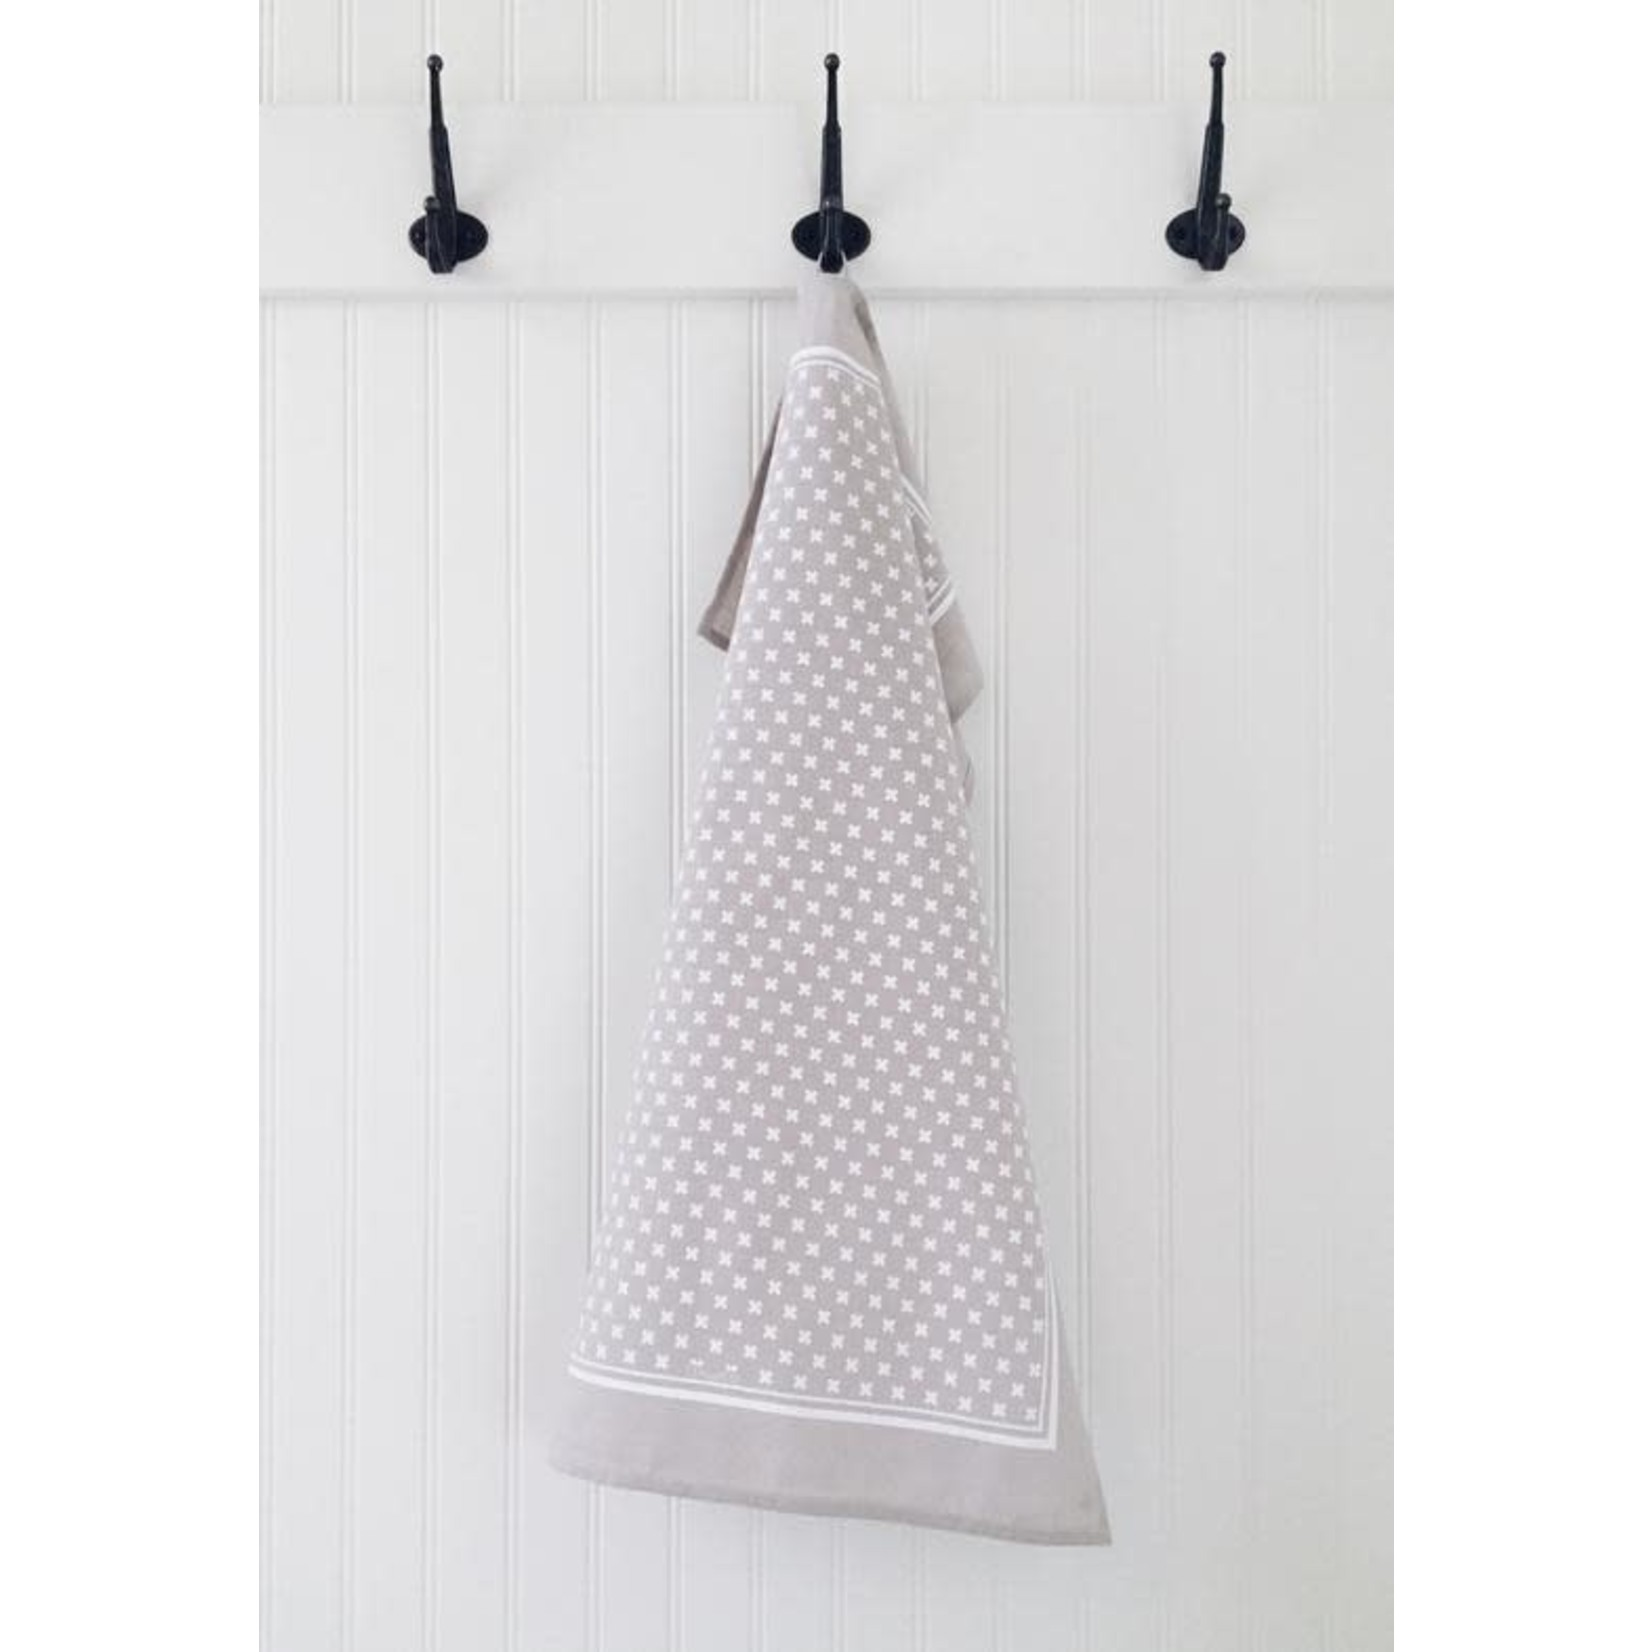 TEN AND CO. TEA TOWEL - TINY X WHITE ON GREY